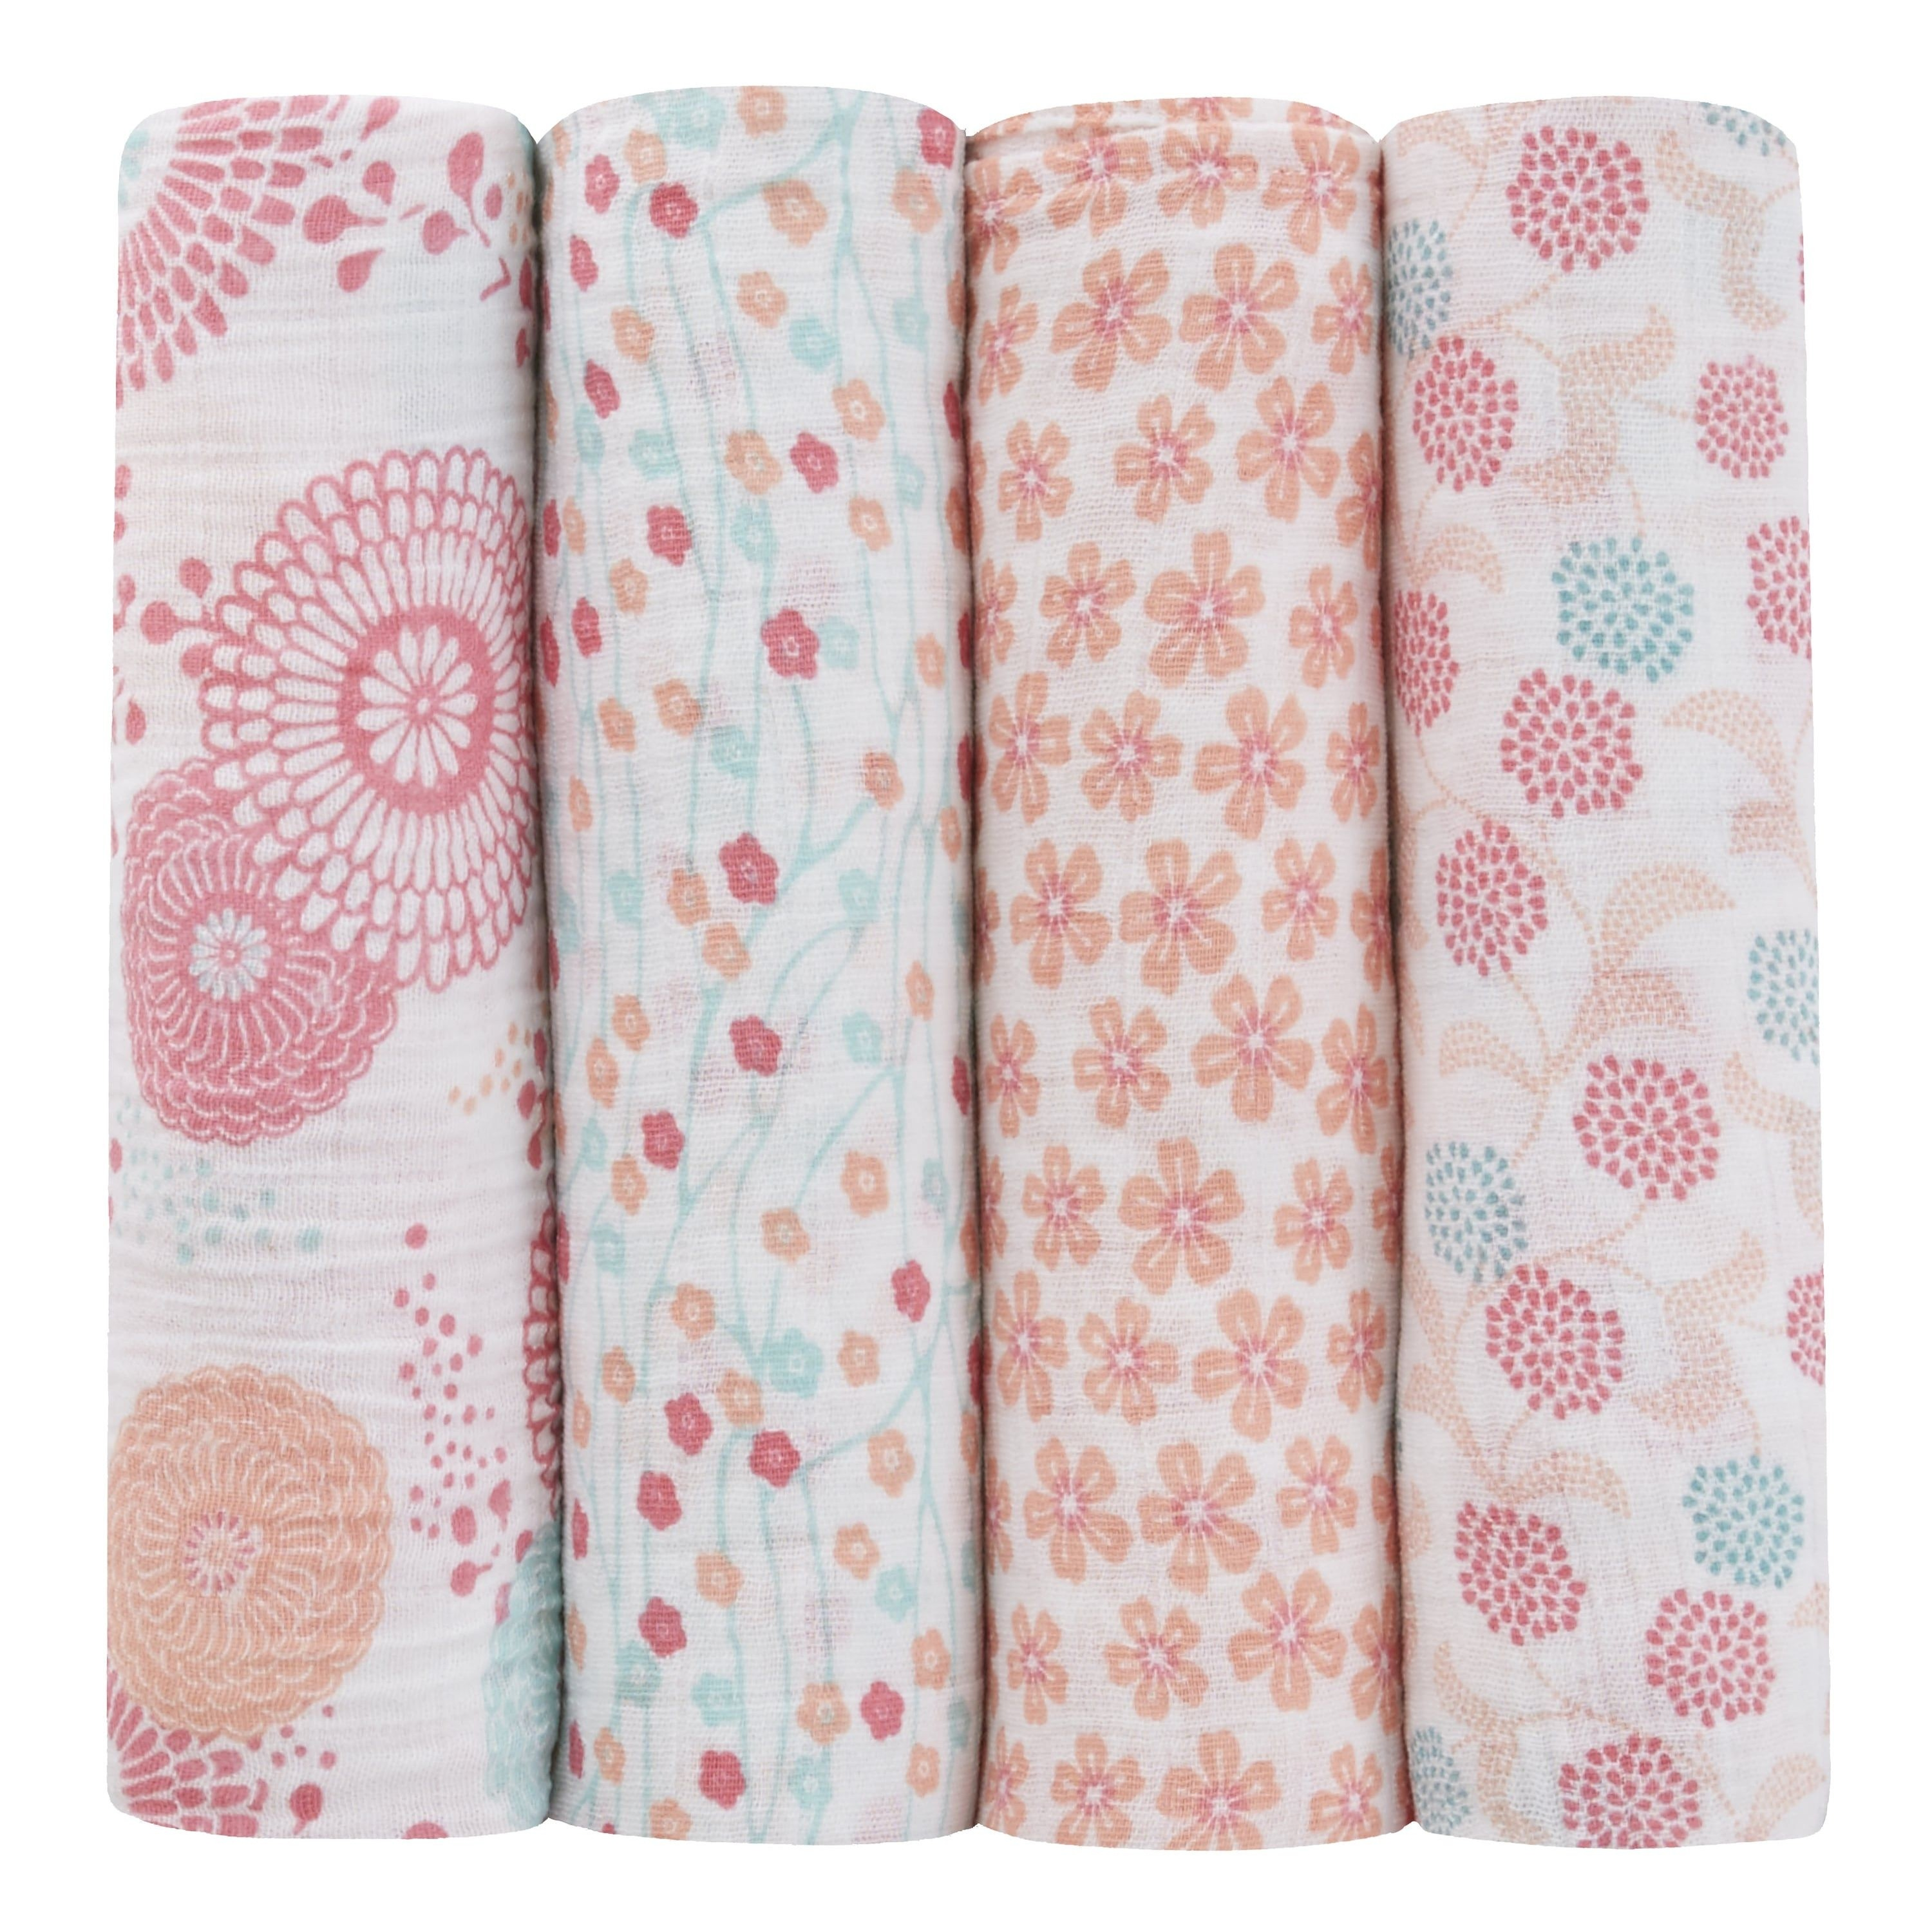 Tea Collection Classic Swaddles 4-pack (Global Garden)